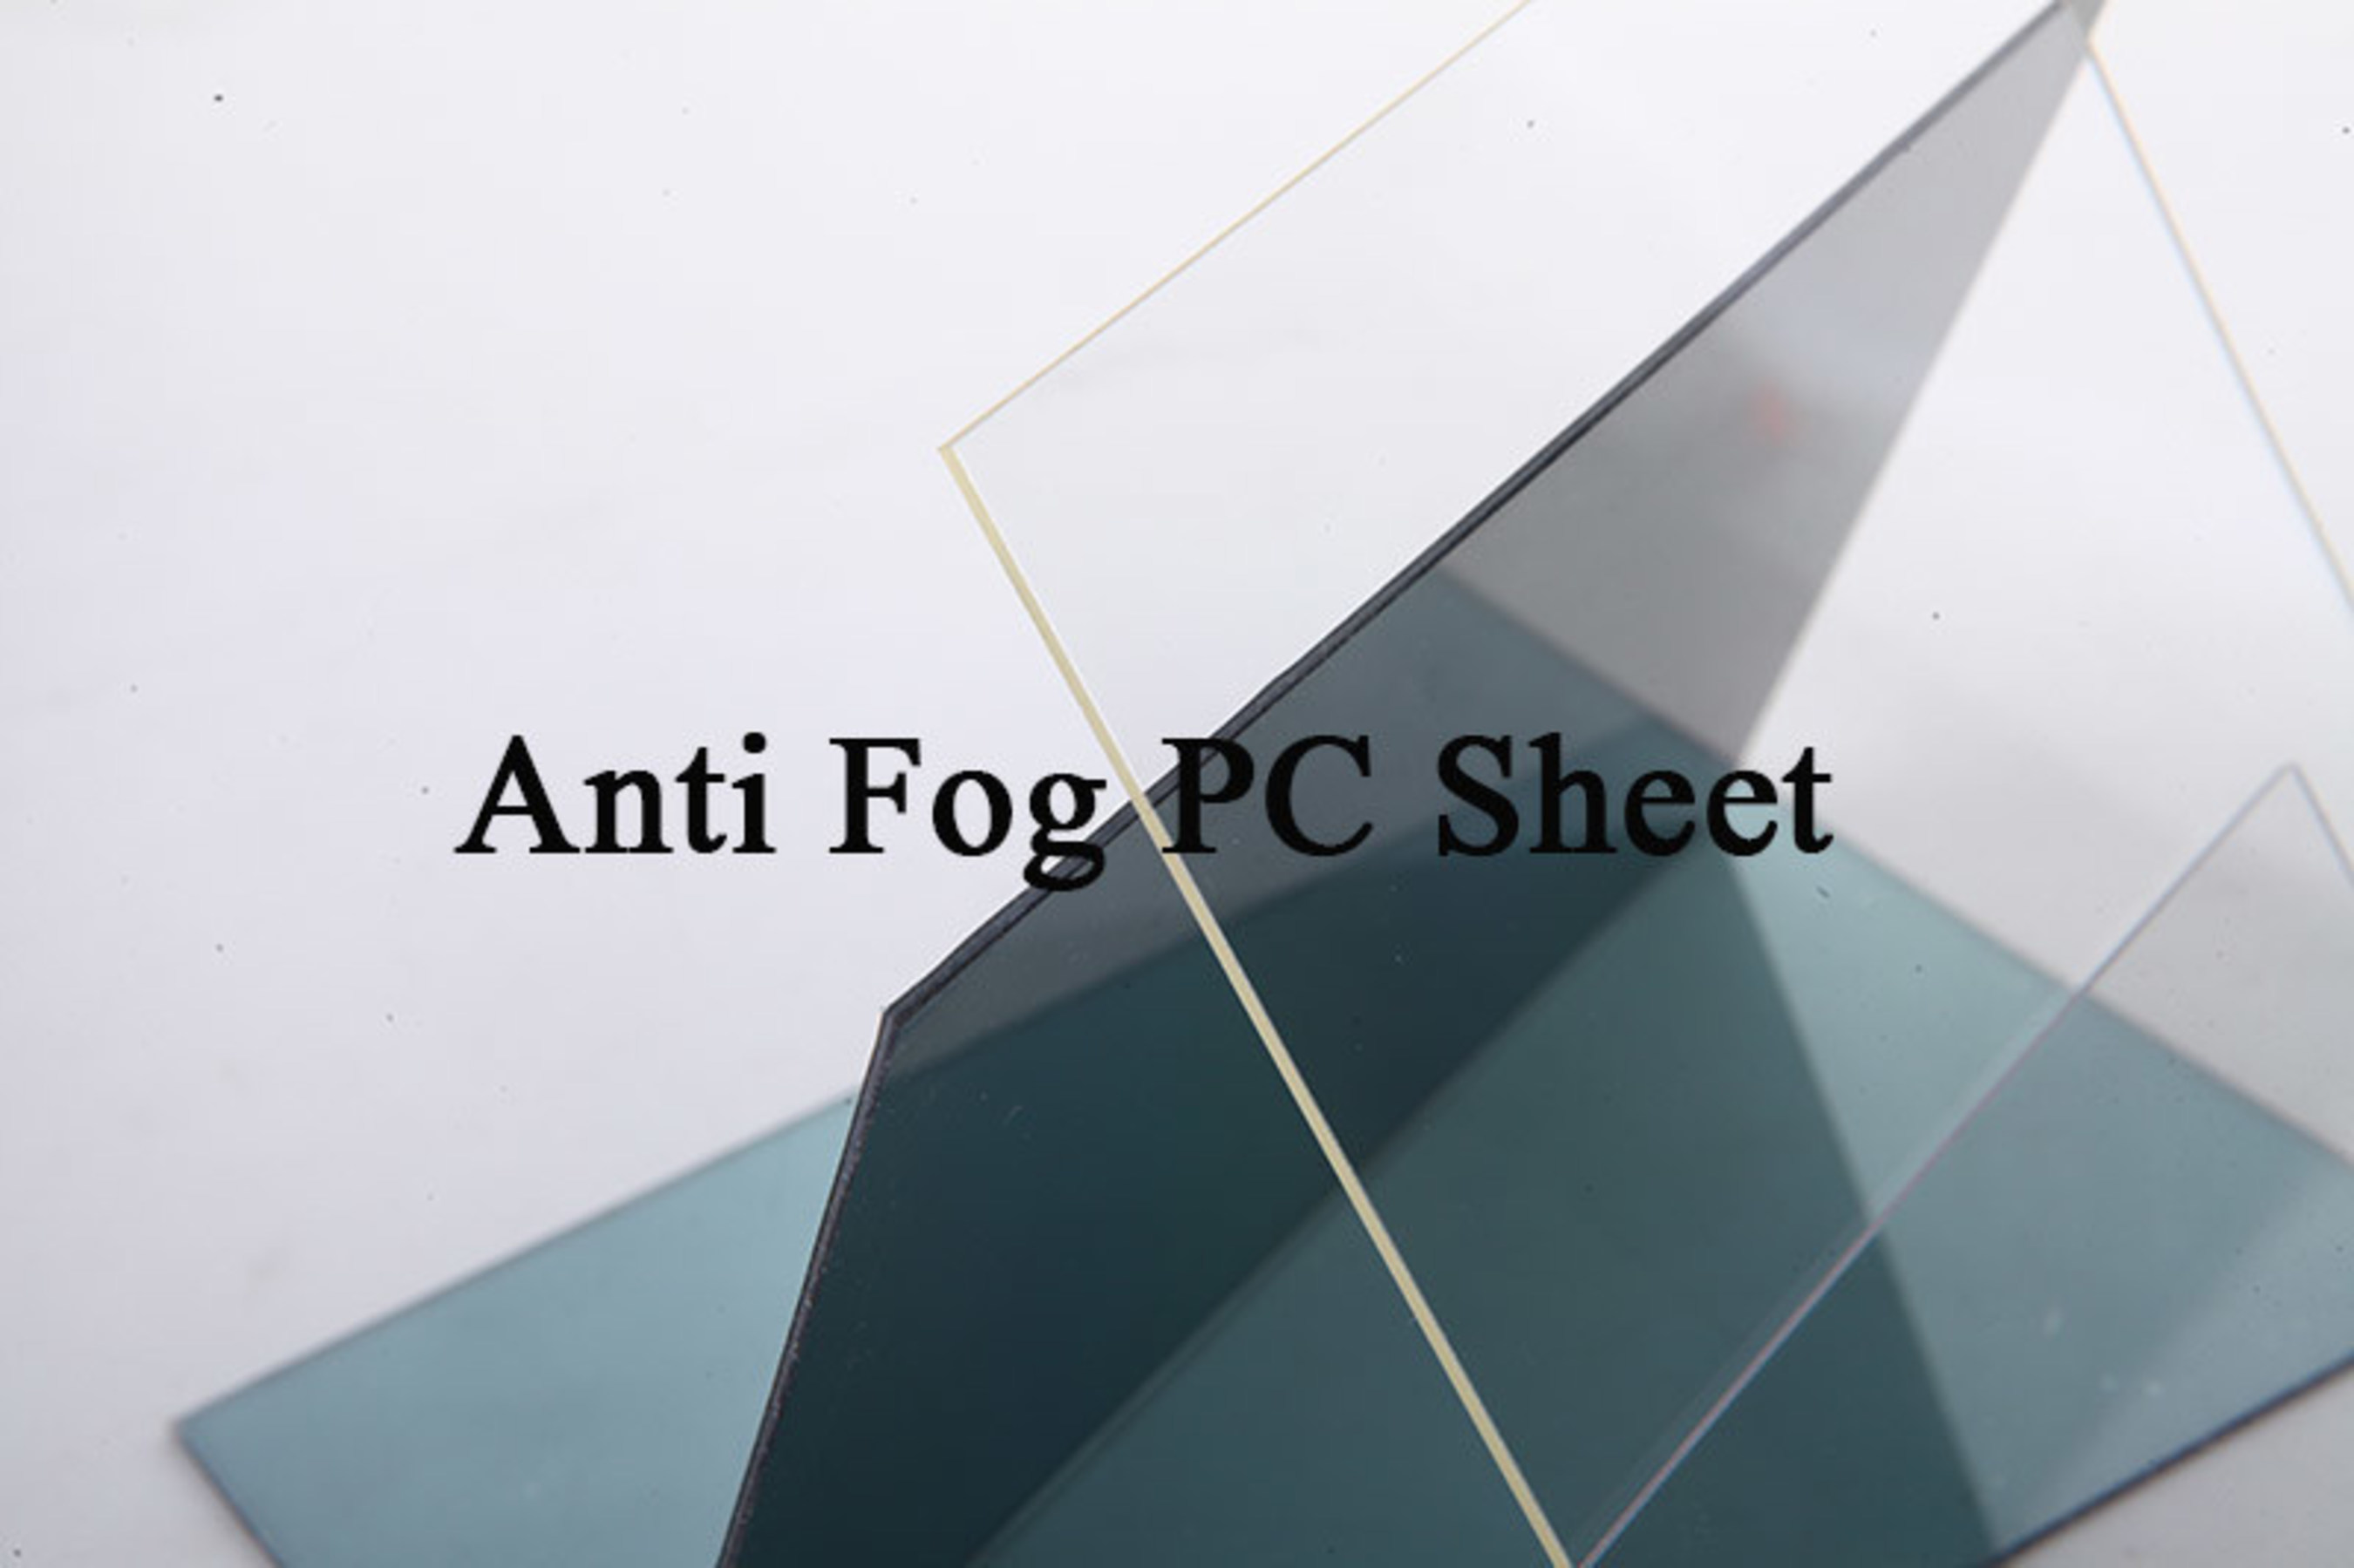 WeeTect Introduces a New Grade of Anti-Fog PC Sheet With Enhanced Performance